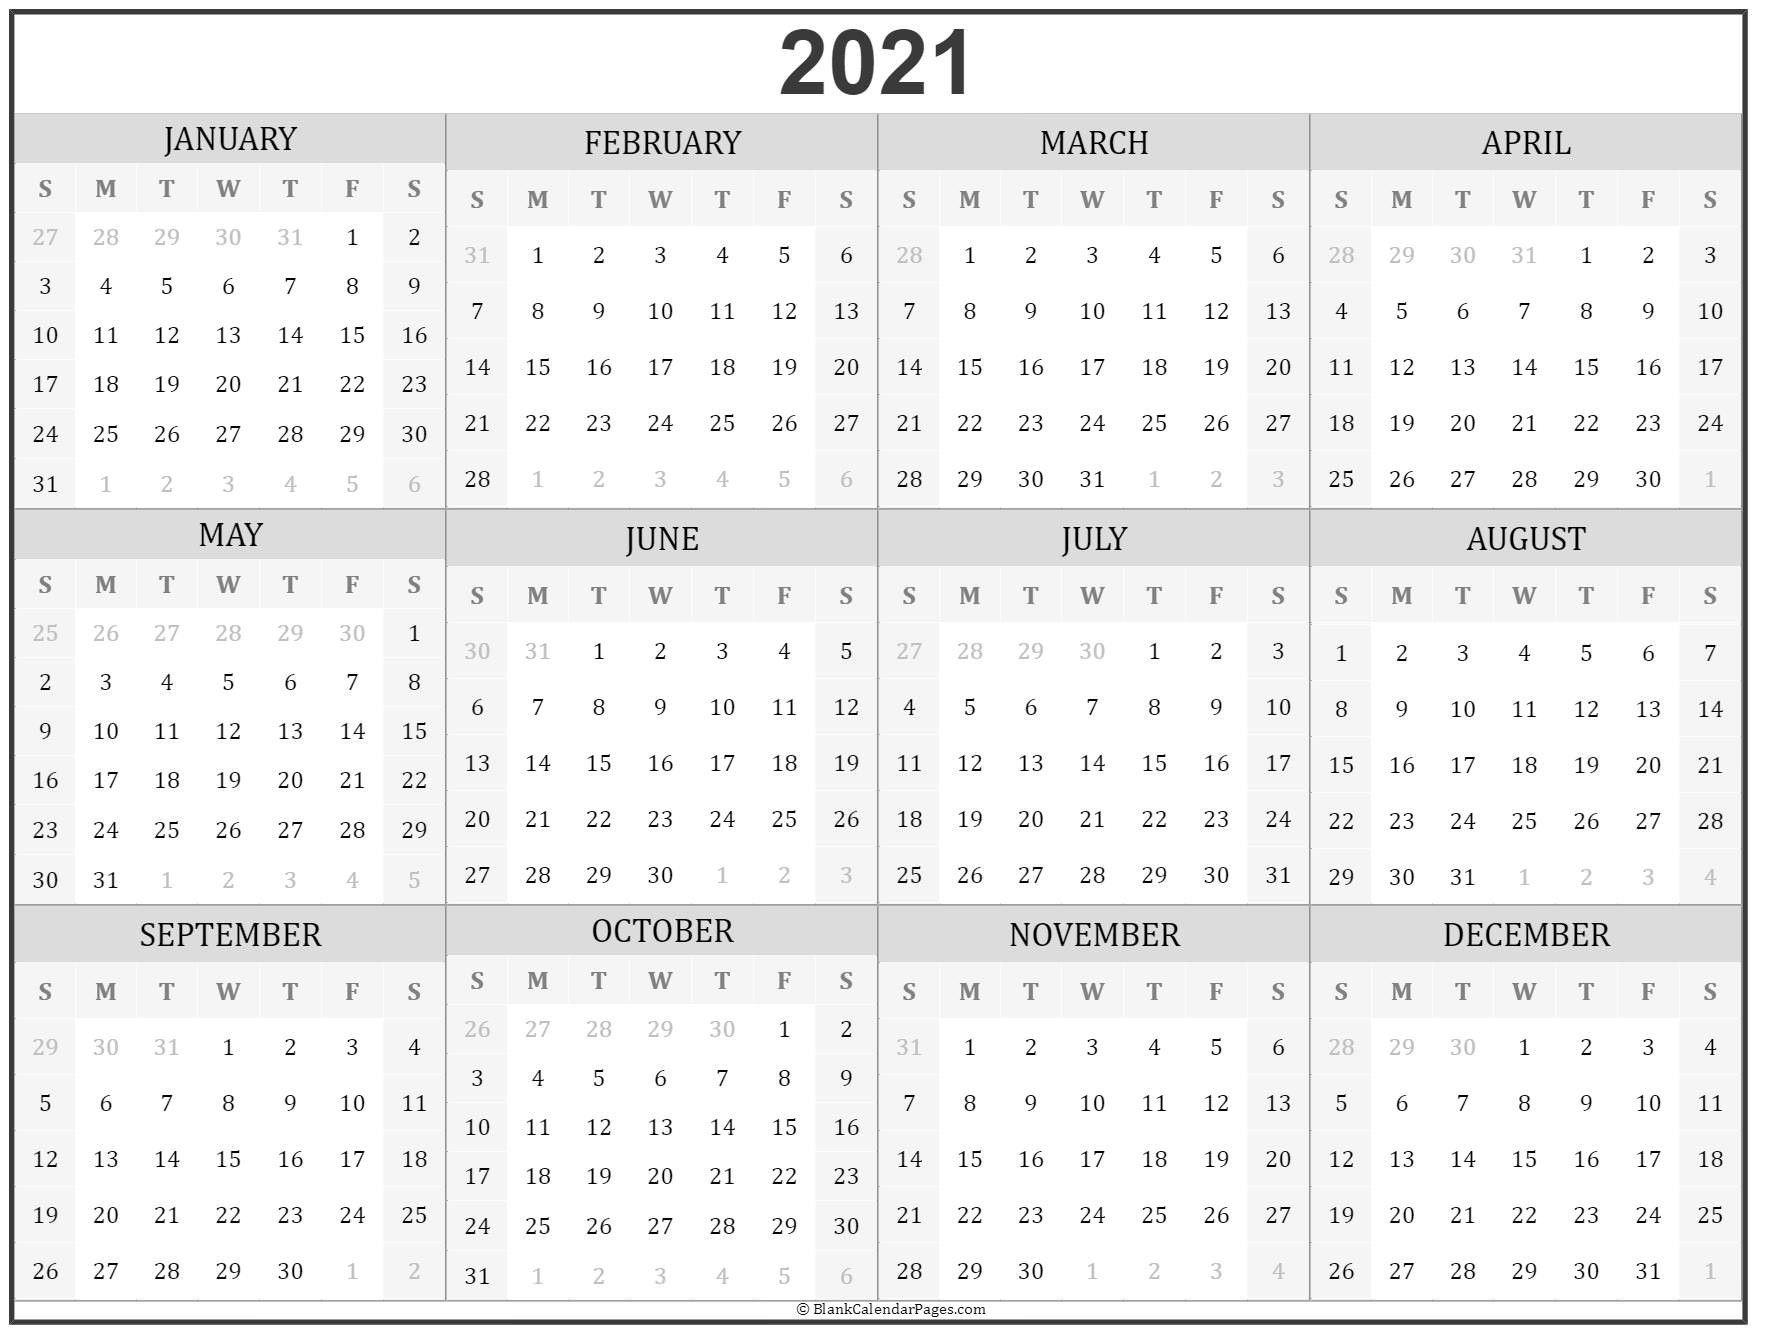 2021 Year Calendar | Yearly Calendar Template, Printable